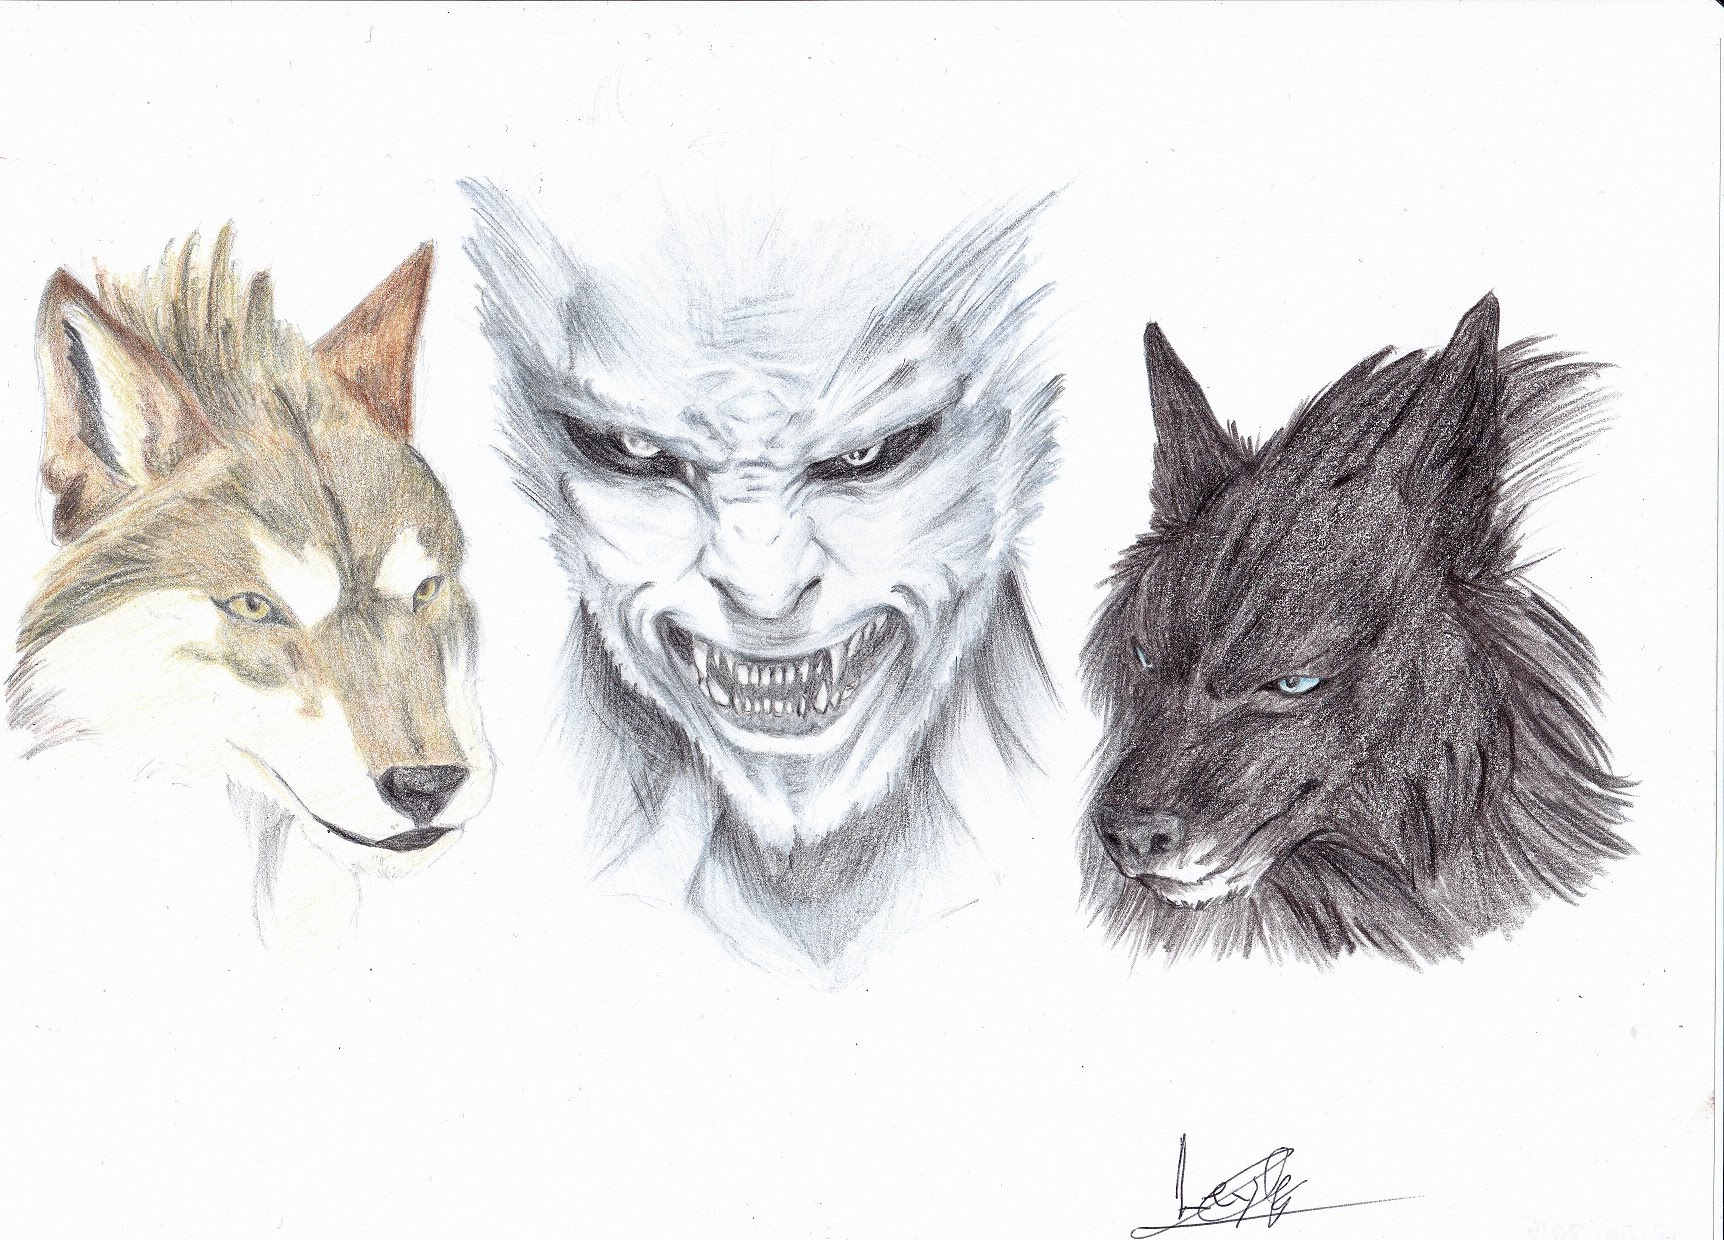 Drawn wolfman pencil drawing YouTube WolfMan  Created Timelapse